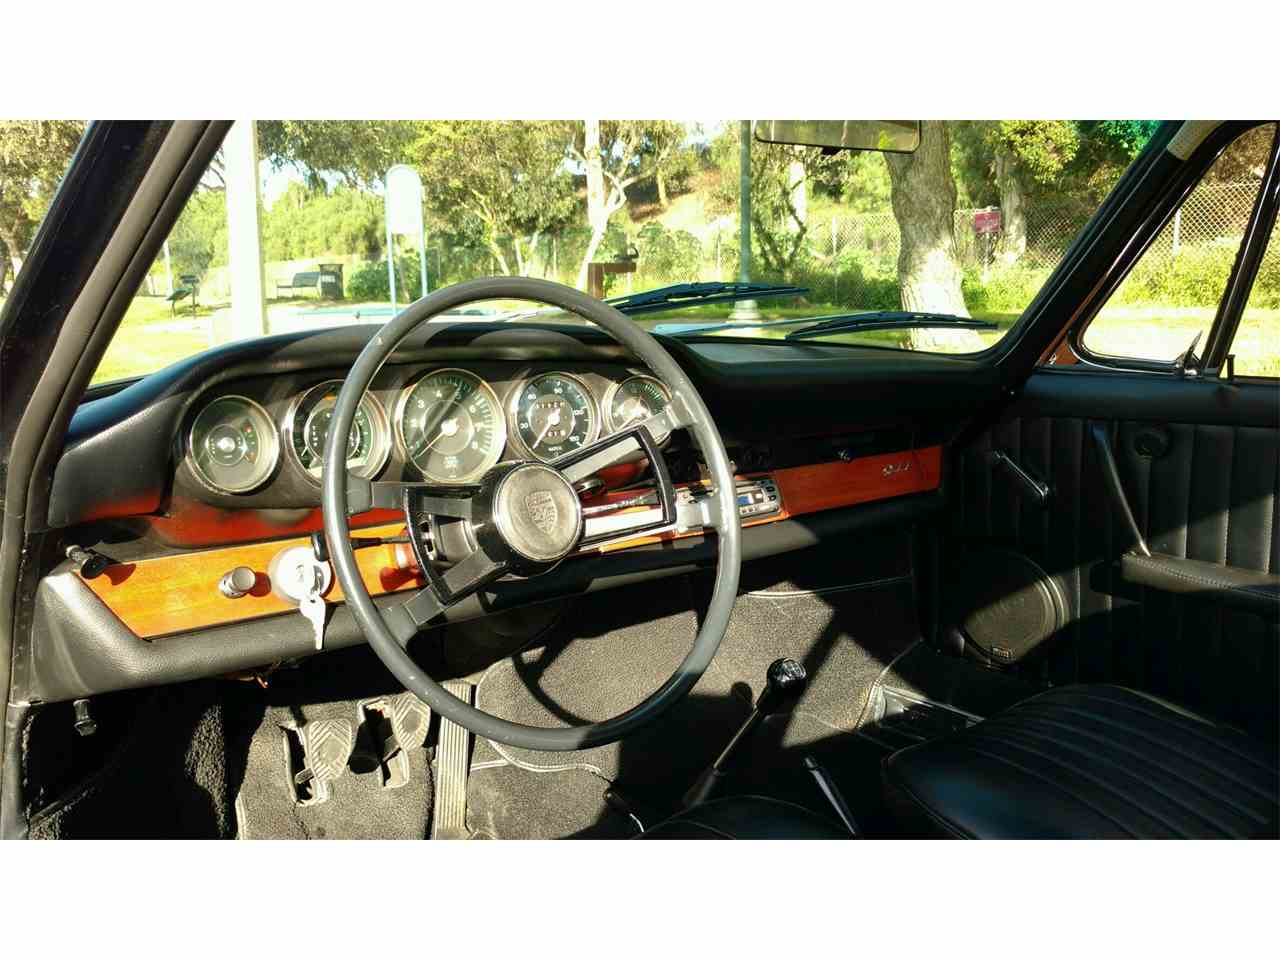 Large Picture of 1966 Porsche 911 located in California - $185,000.00 Offered by a Private Seller - K1JK